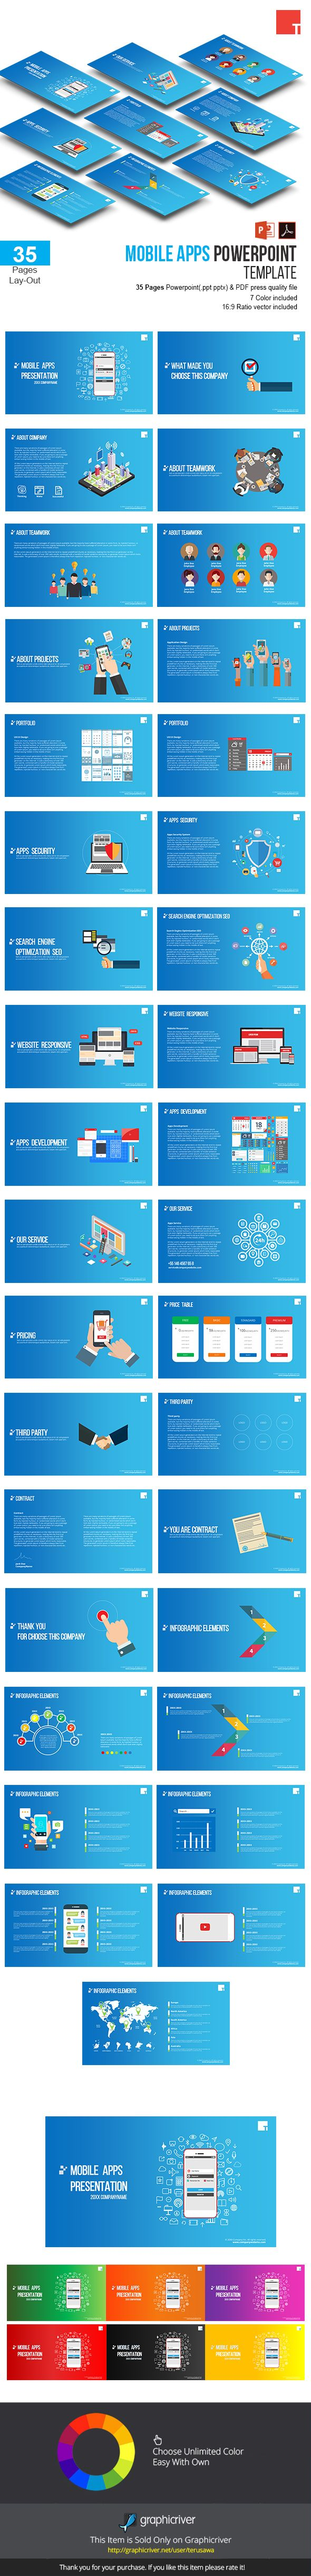 Mobile apps powerpoint template creative powerpoint templates mobile apps powerpoint template toneelgroepblik Choice Image